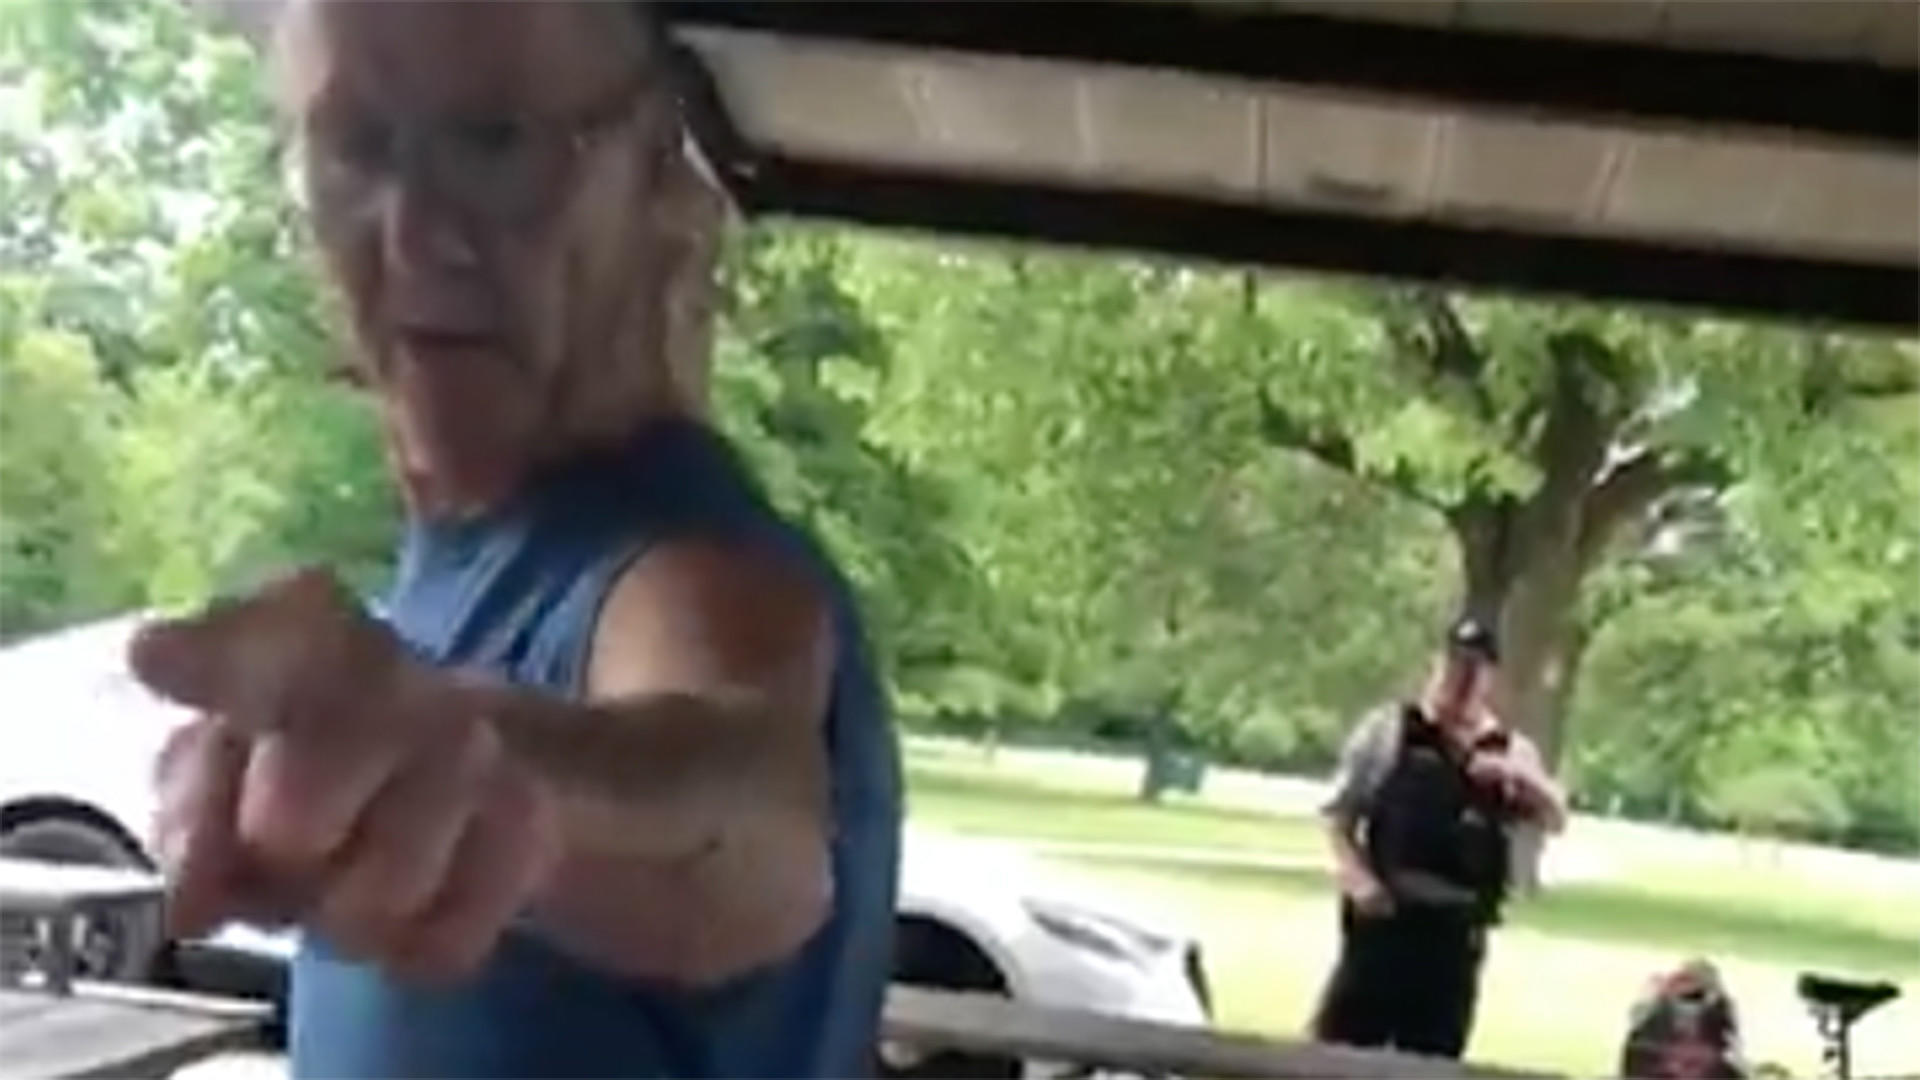 Man caught on video confronting woman over Puerto Rico shirt charged with felony hate crime